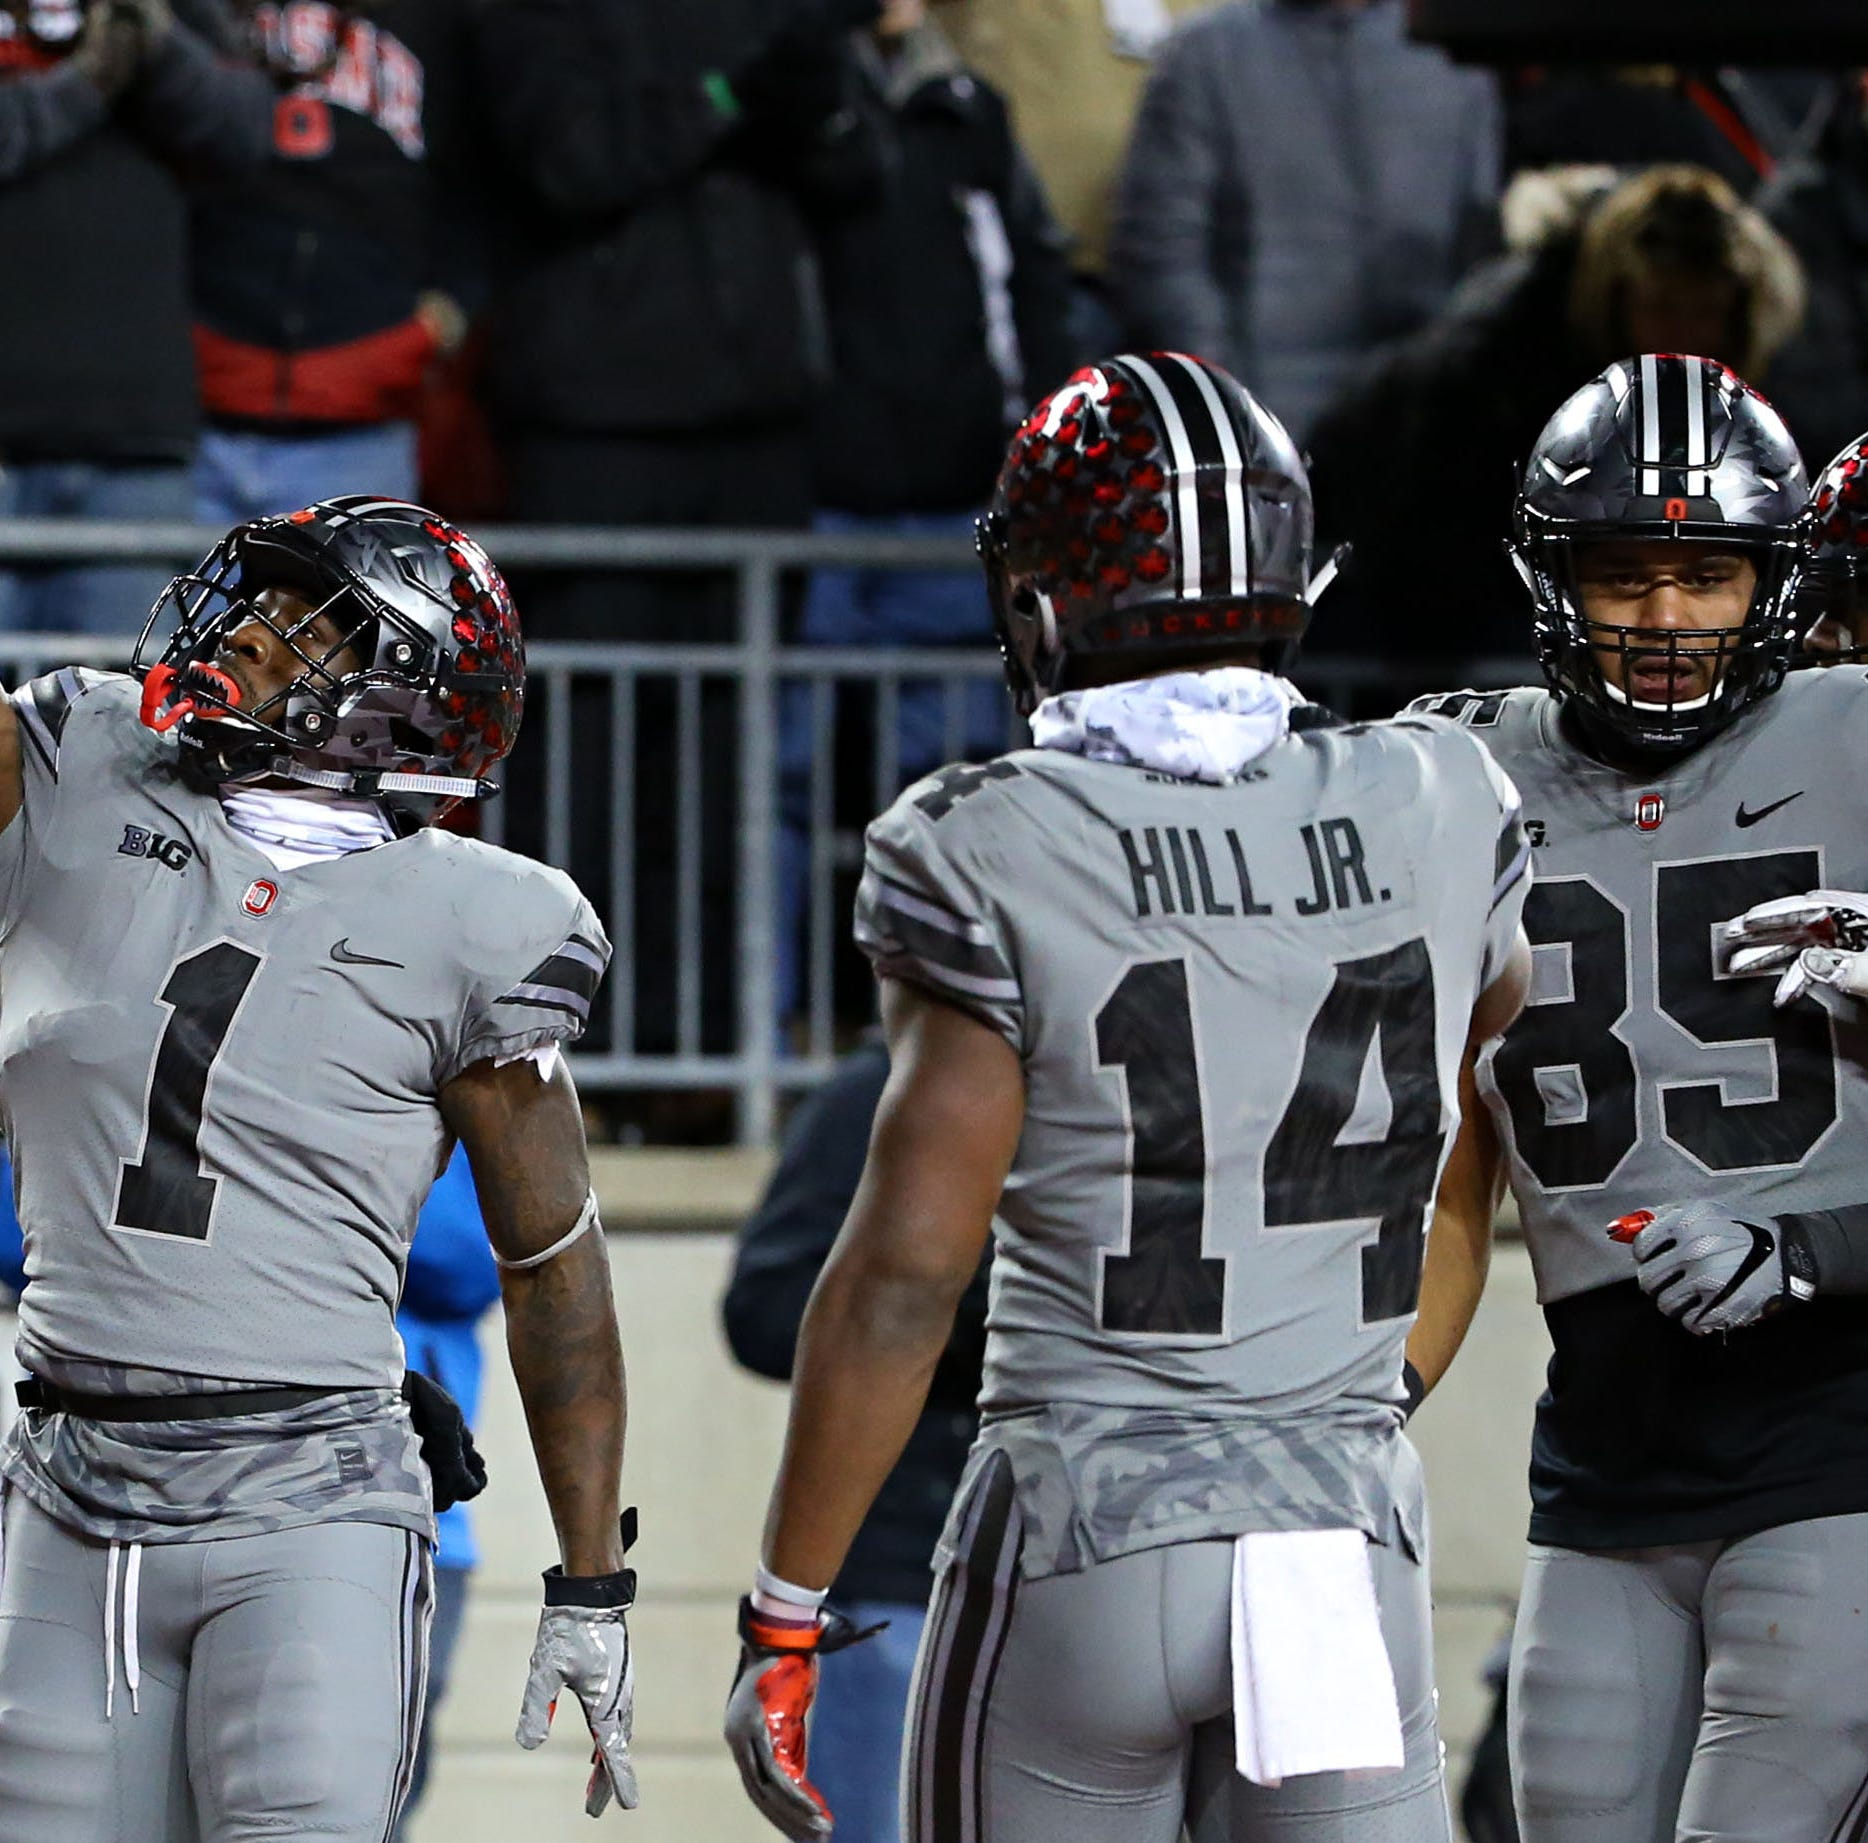 Scouting report: Will OSU, Penn State defenses show up?